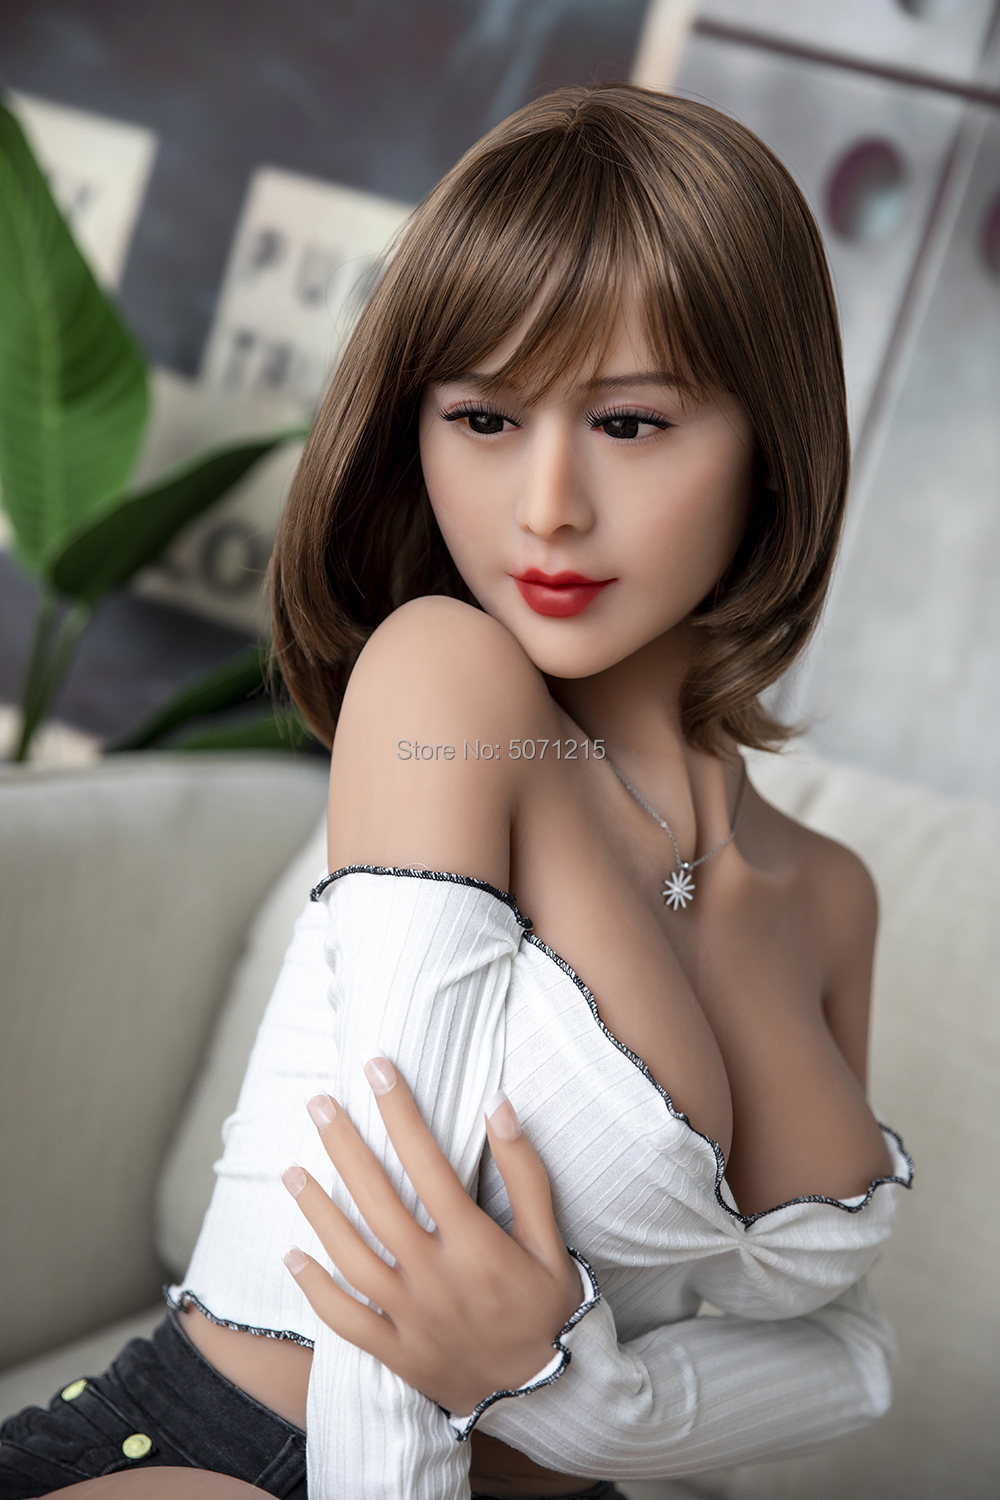 <font><b>166cm</b></font> <font><b>Sex</b></font> <font><b>Dolls</b></font> Chinese Famous TV Star Love <font><b>Doll</b></font> Soft tpe <font><b>Sex</b></font> Toy with Bobs Hair Styling for Men Masturbation image